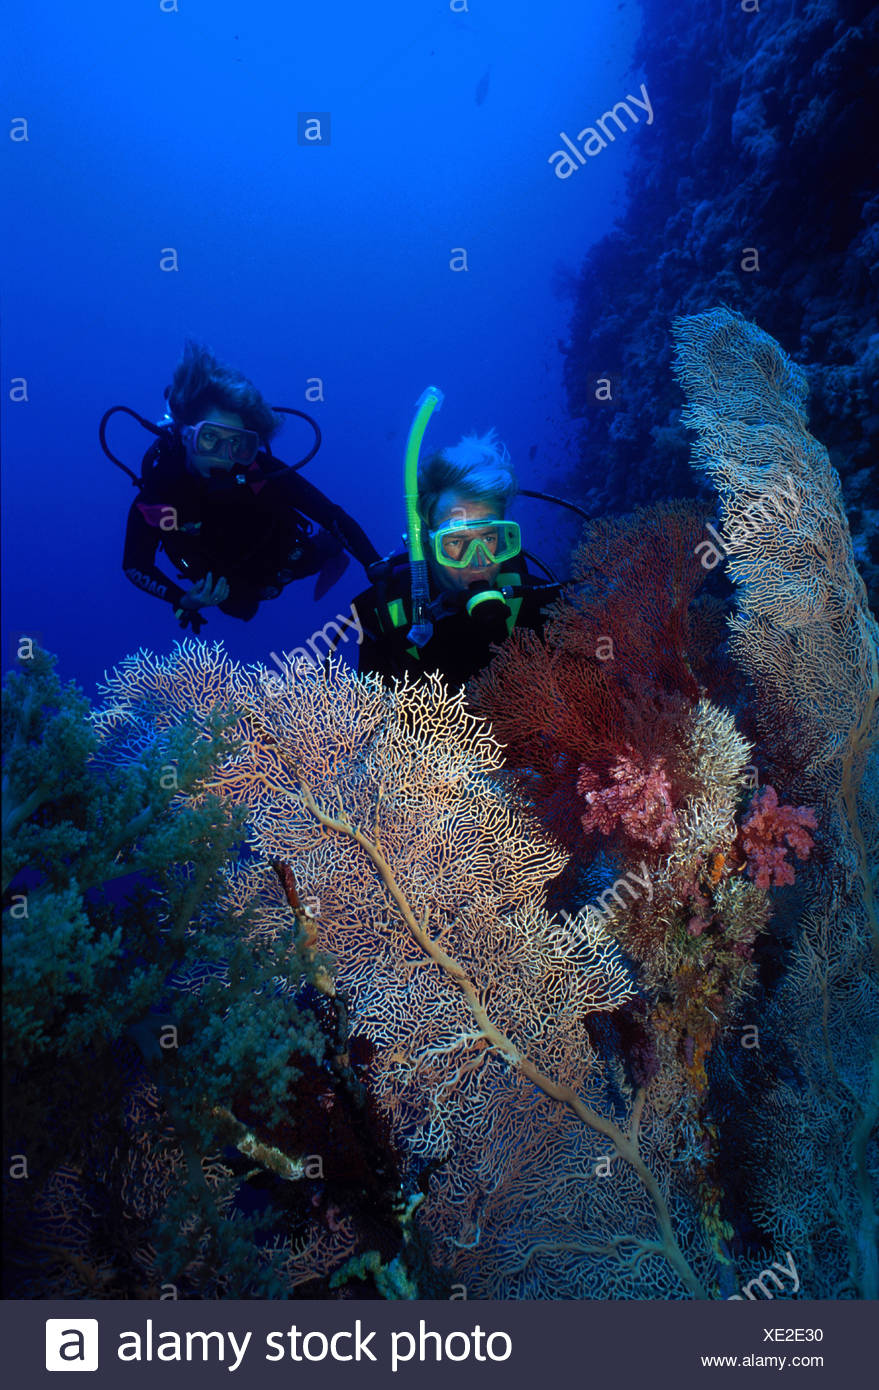 A PAIR OF SCUBA DIVERS GAZE AT SEAFANS ON A WALL IN THE RED SEA - Stock Image